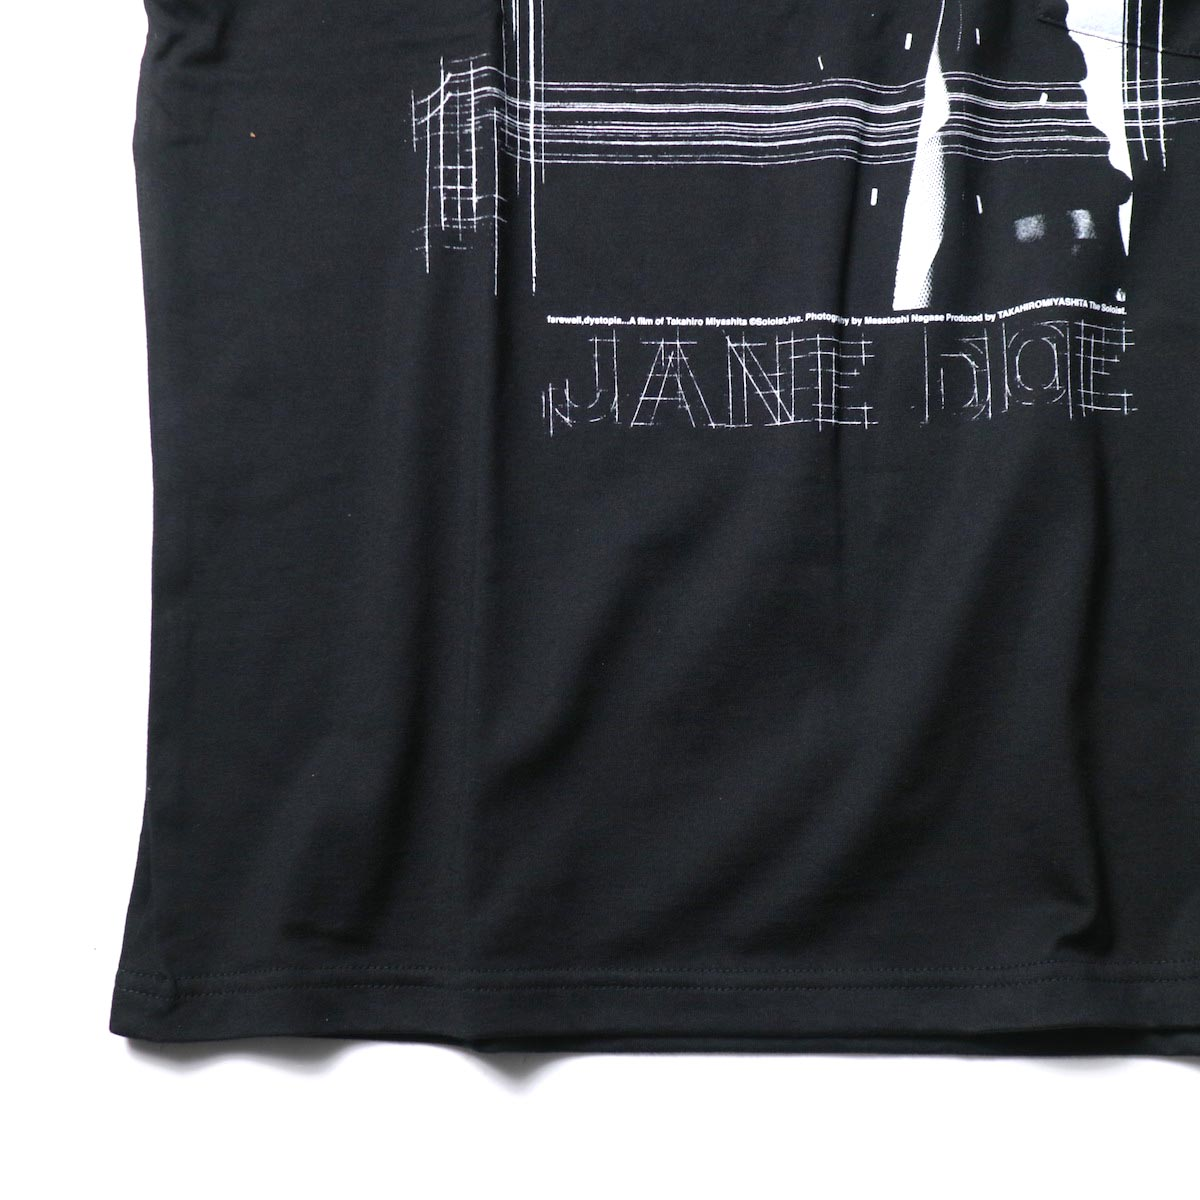 The Soloist / sc.0475ss21 jane doe